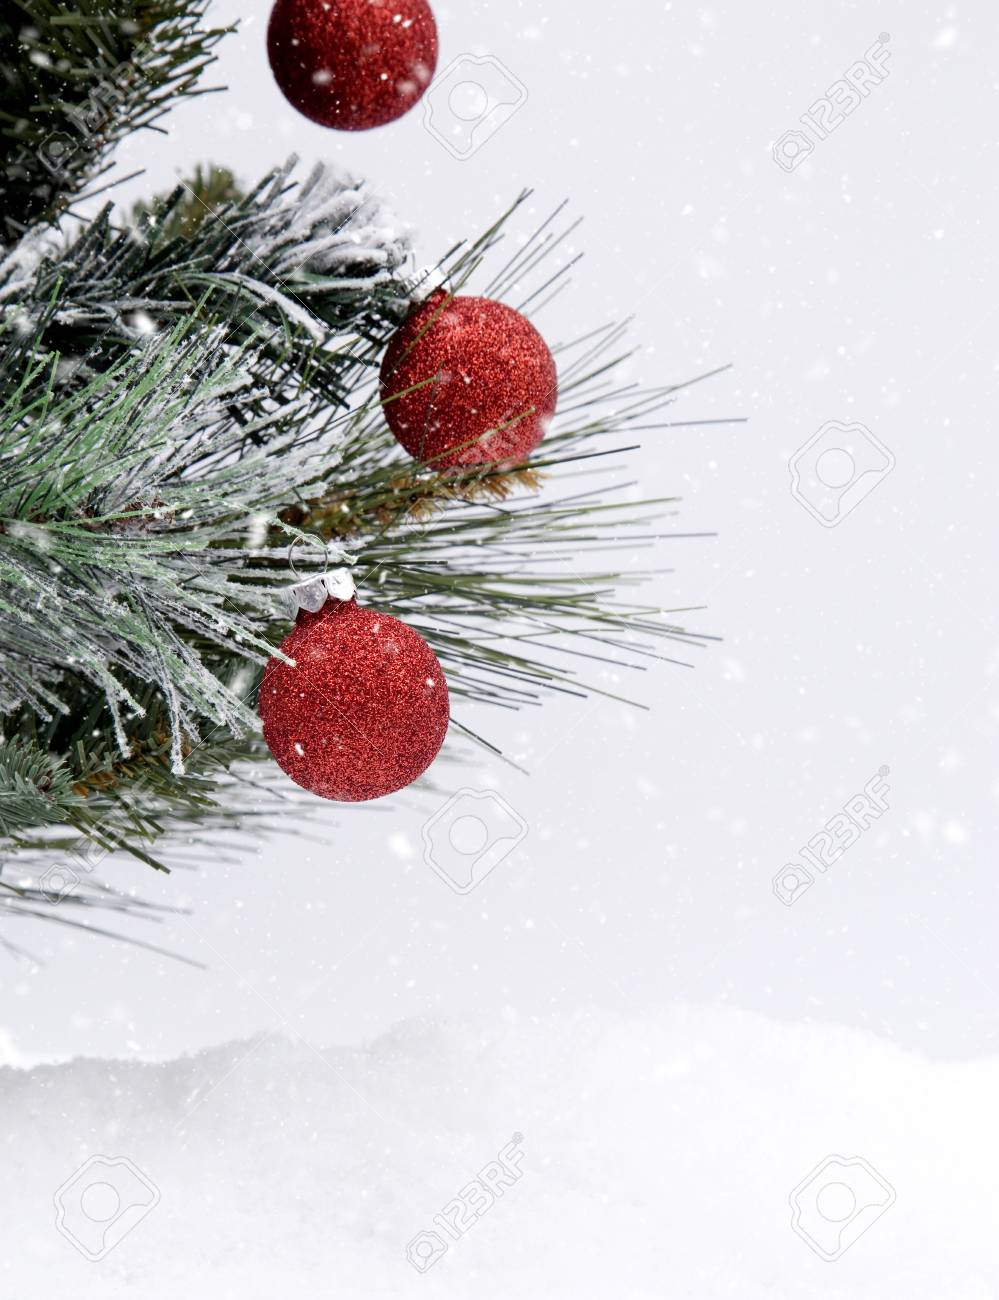 christmas themed background in the snow stock photo, picture and